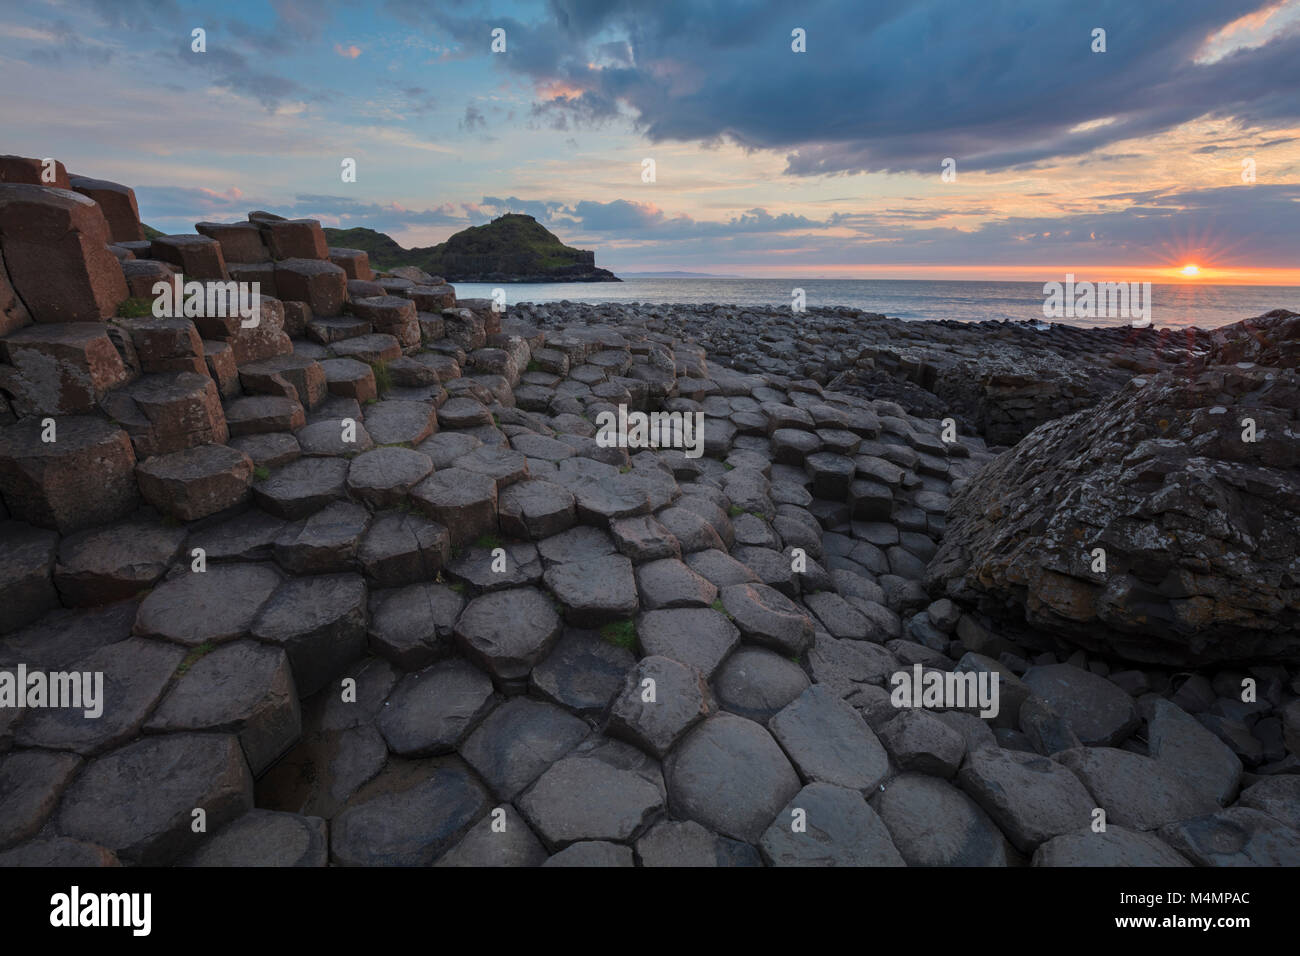 Sunset at the Giant's Causeway, Country Antrim, Northern Ireland. Stock Photo